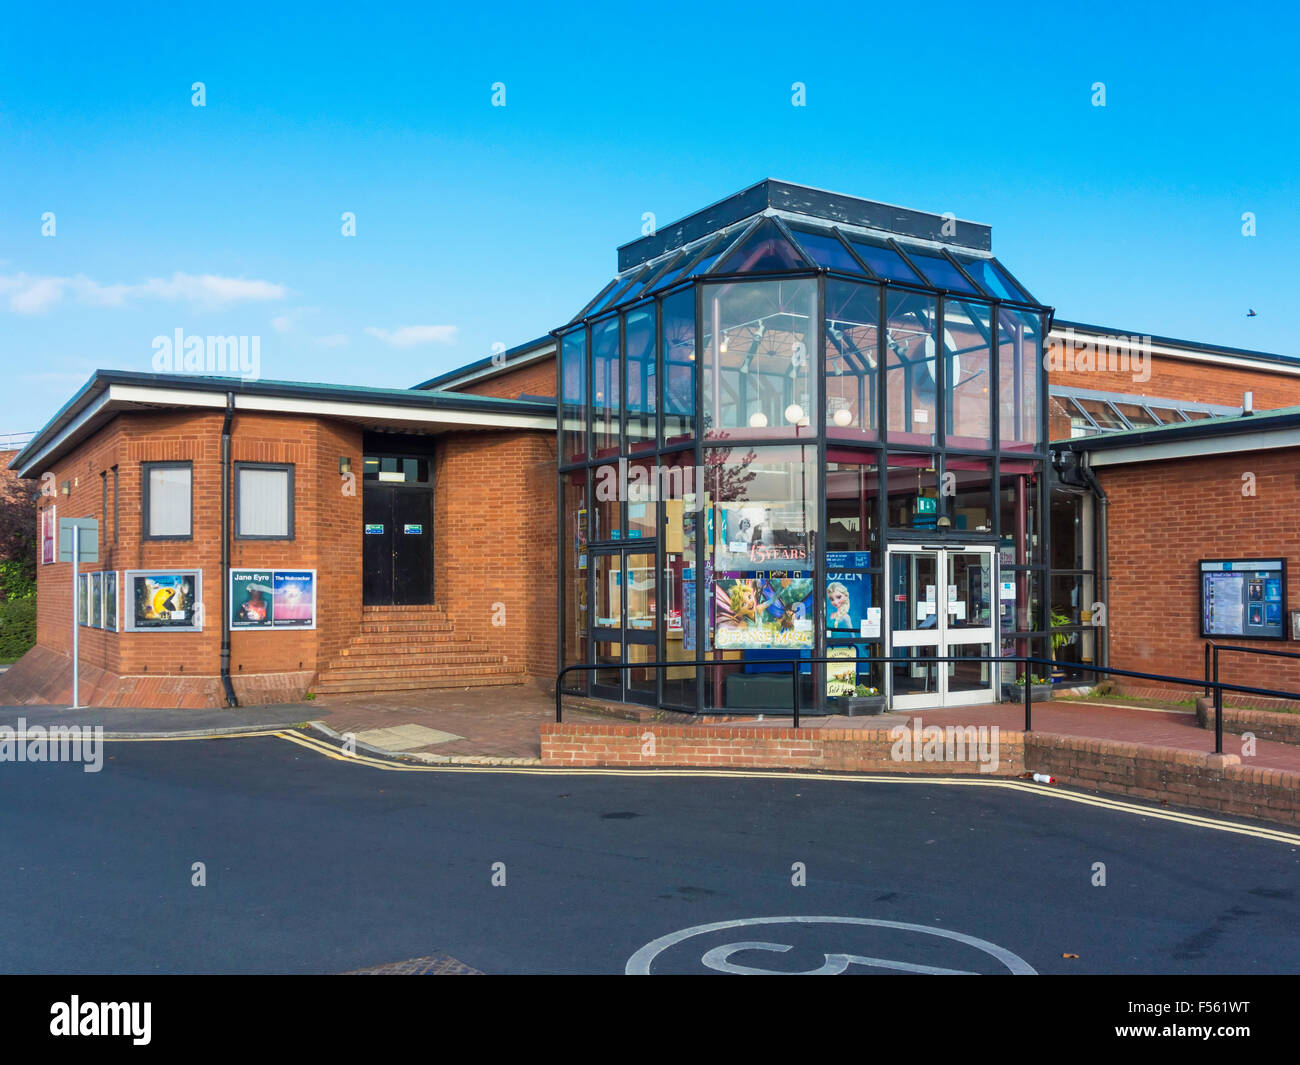 Hambleton Forum a Community Centre with facilities for Cinema Theatre Music and leisure activities in Northallerton Stock Photo